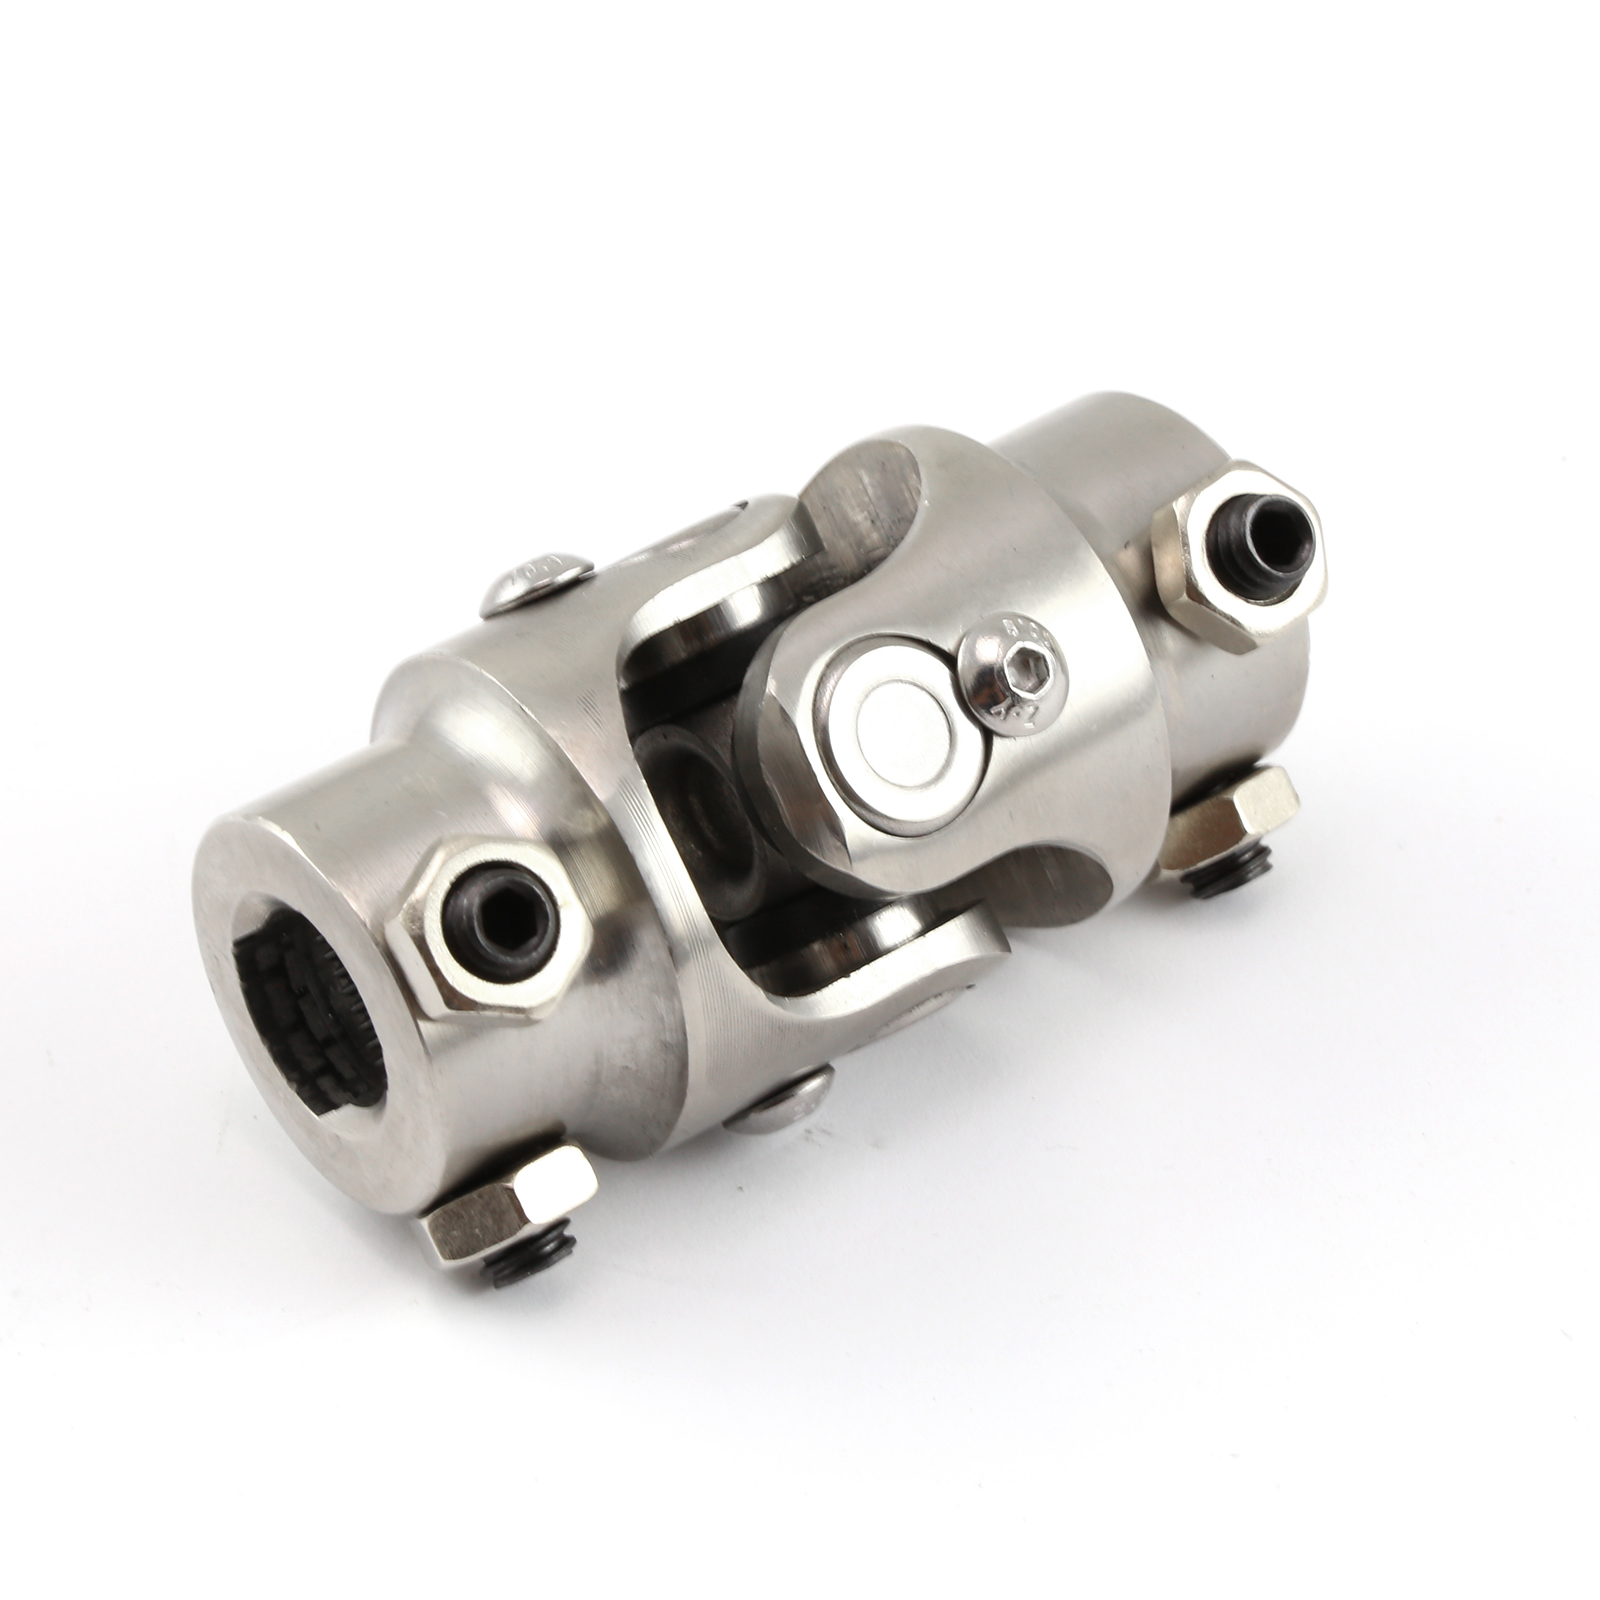 Quot dd double d stainless steel steering u joint